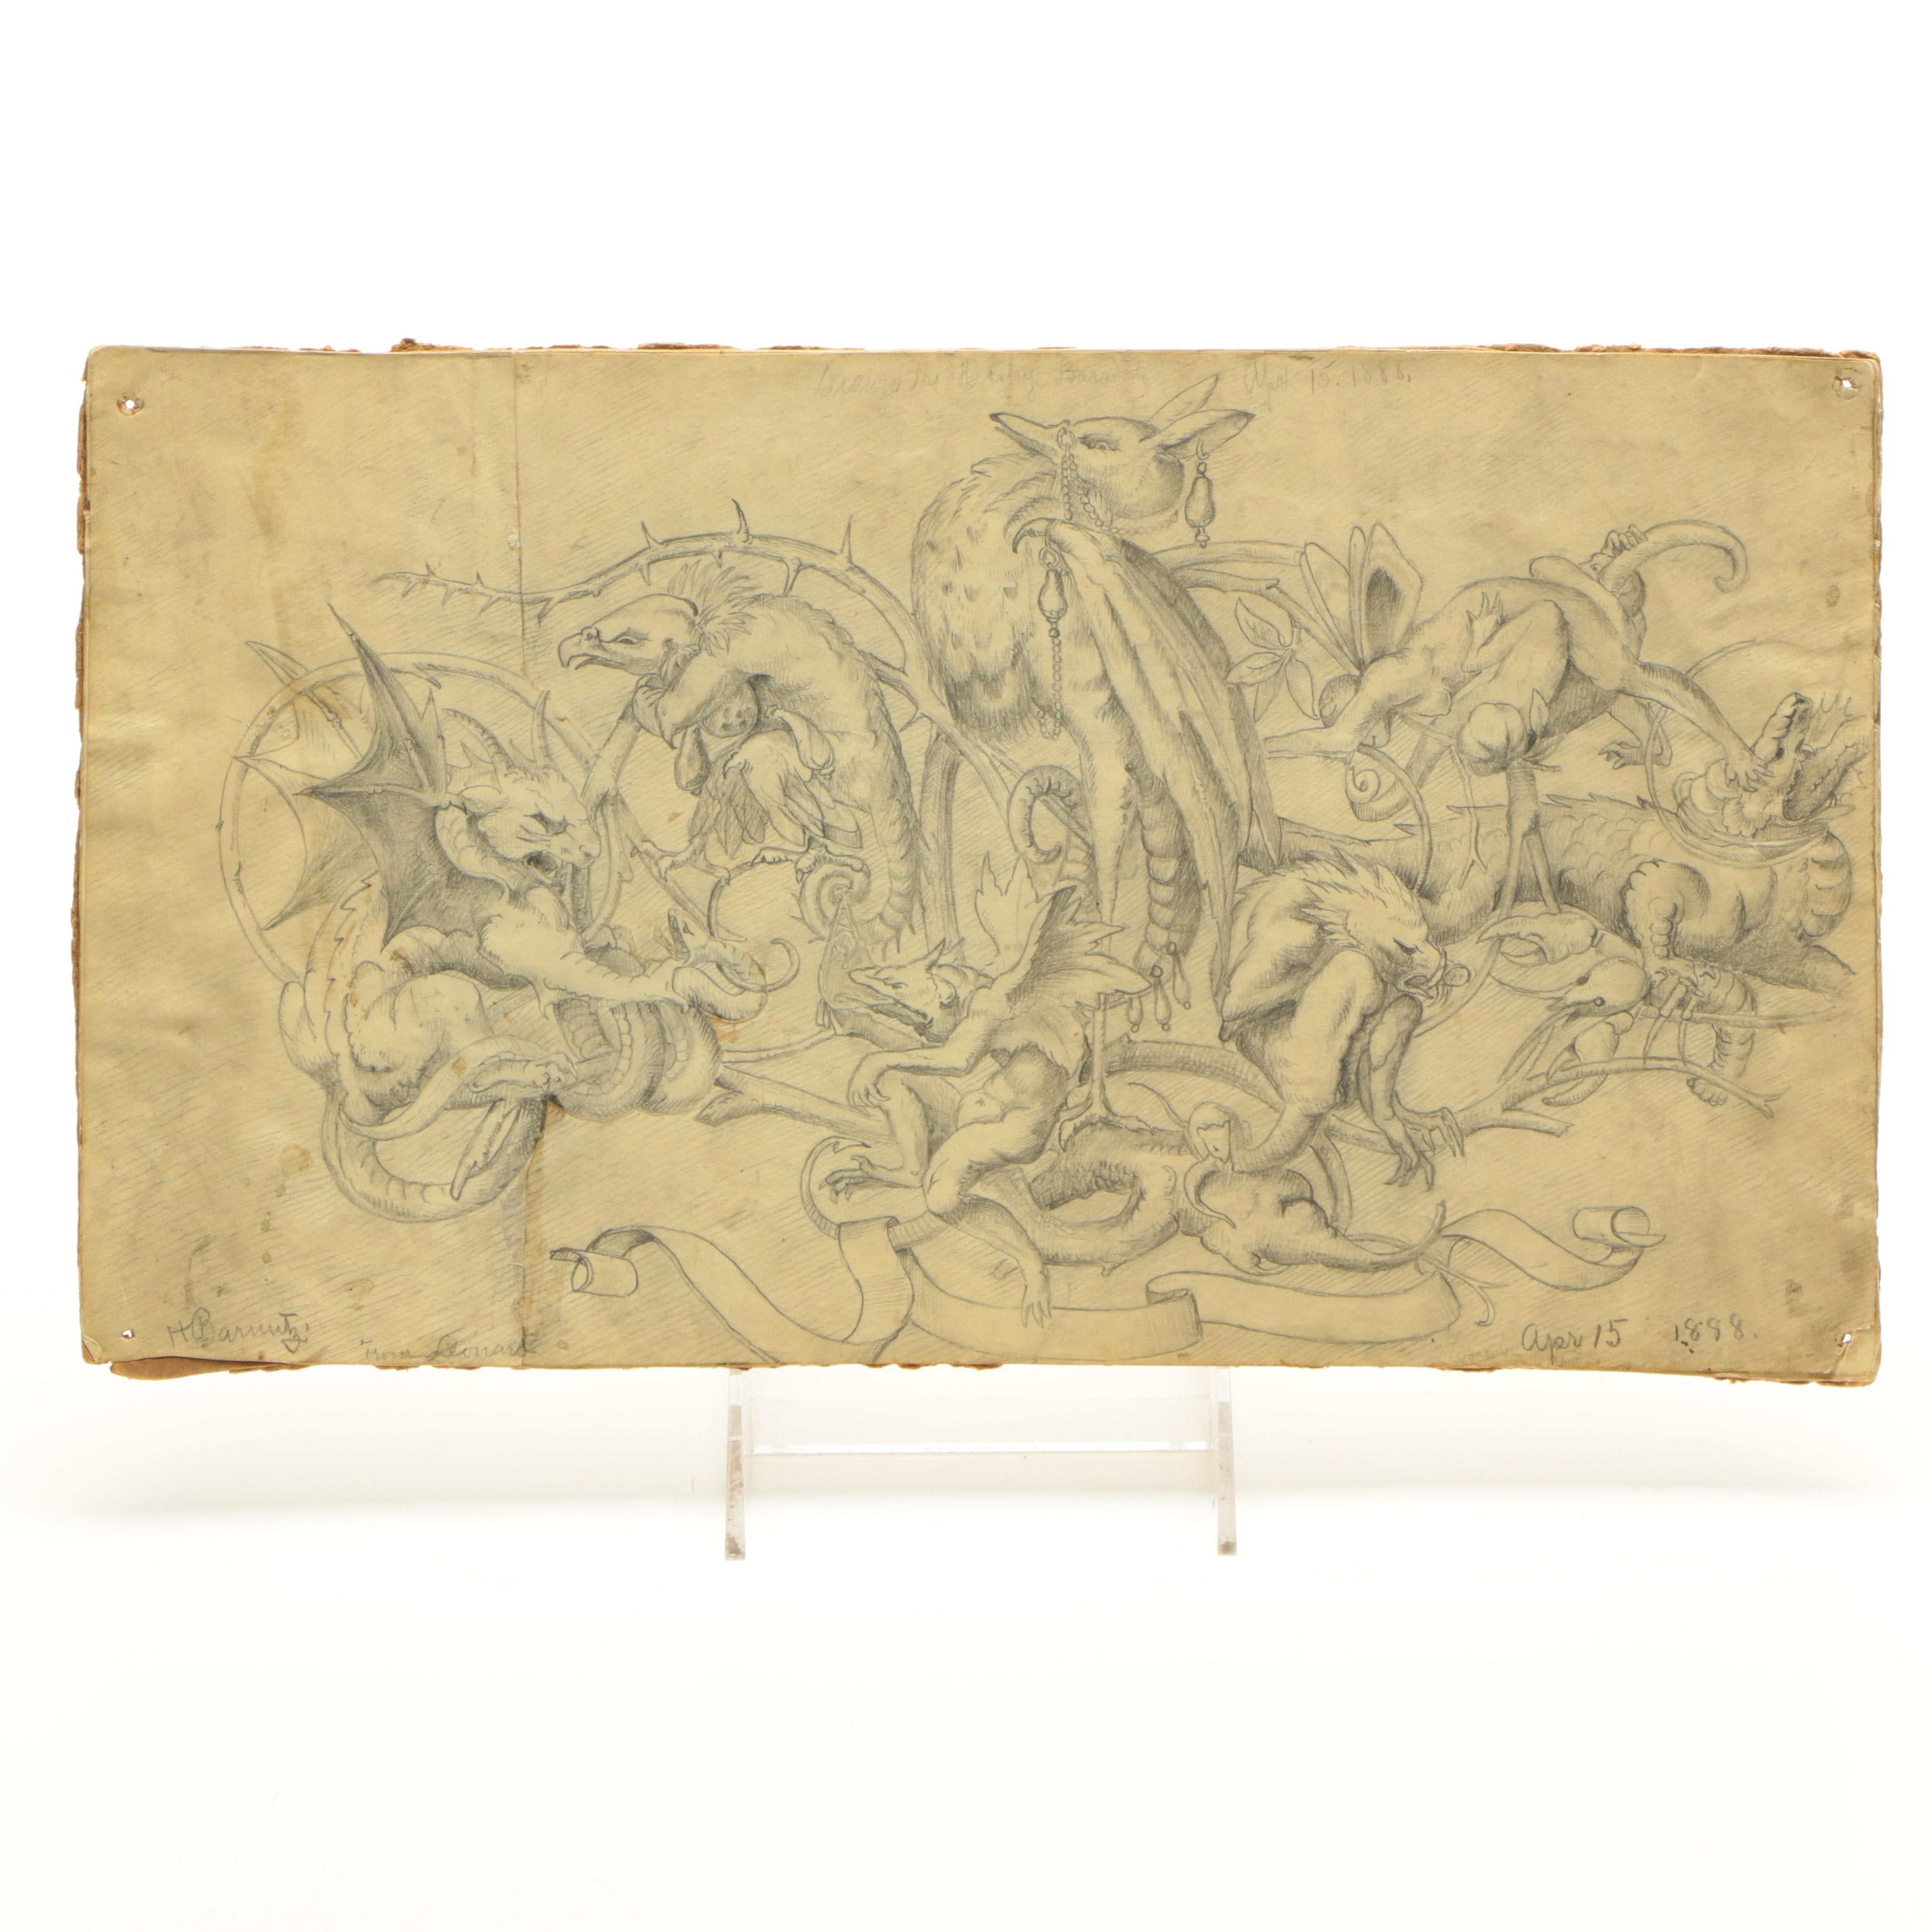 Signed Original 1888 Fantastical Graphite Drawing on Paper of Monsters